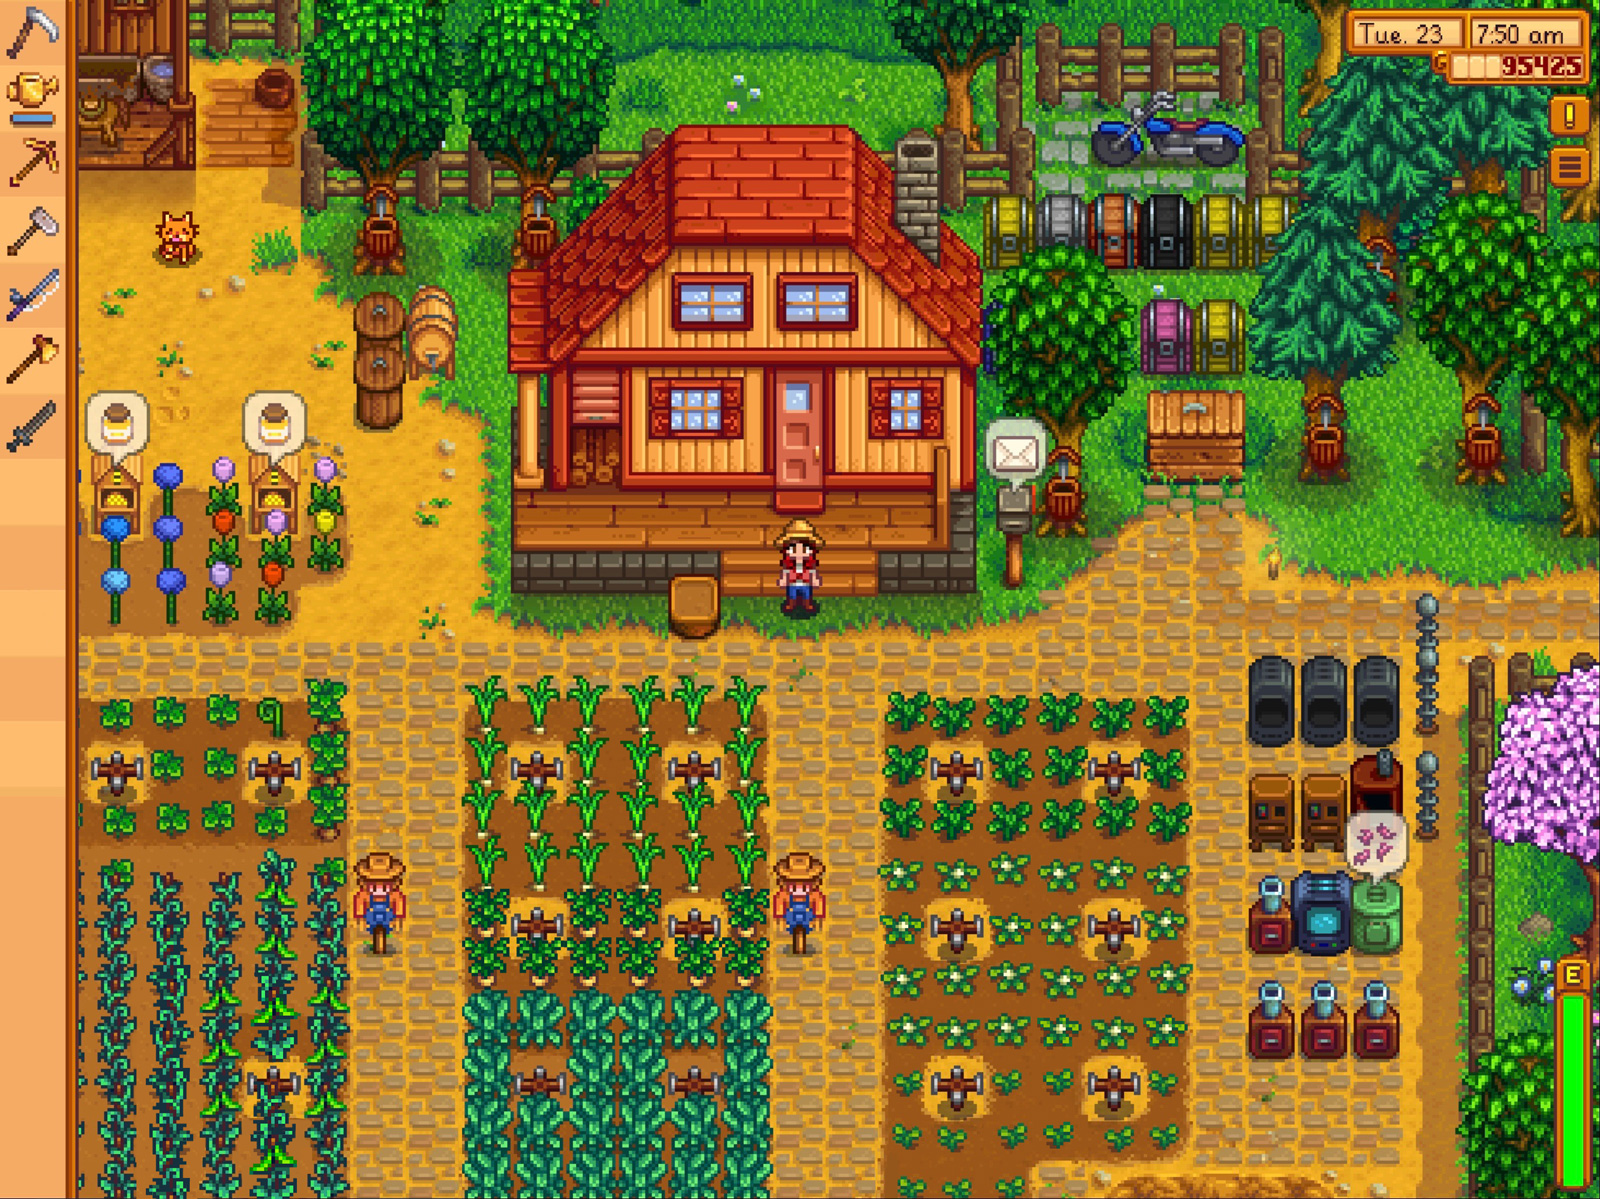 photo of Delightful farming RPG 'Stardew Valley' is coming to iOS image